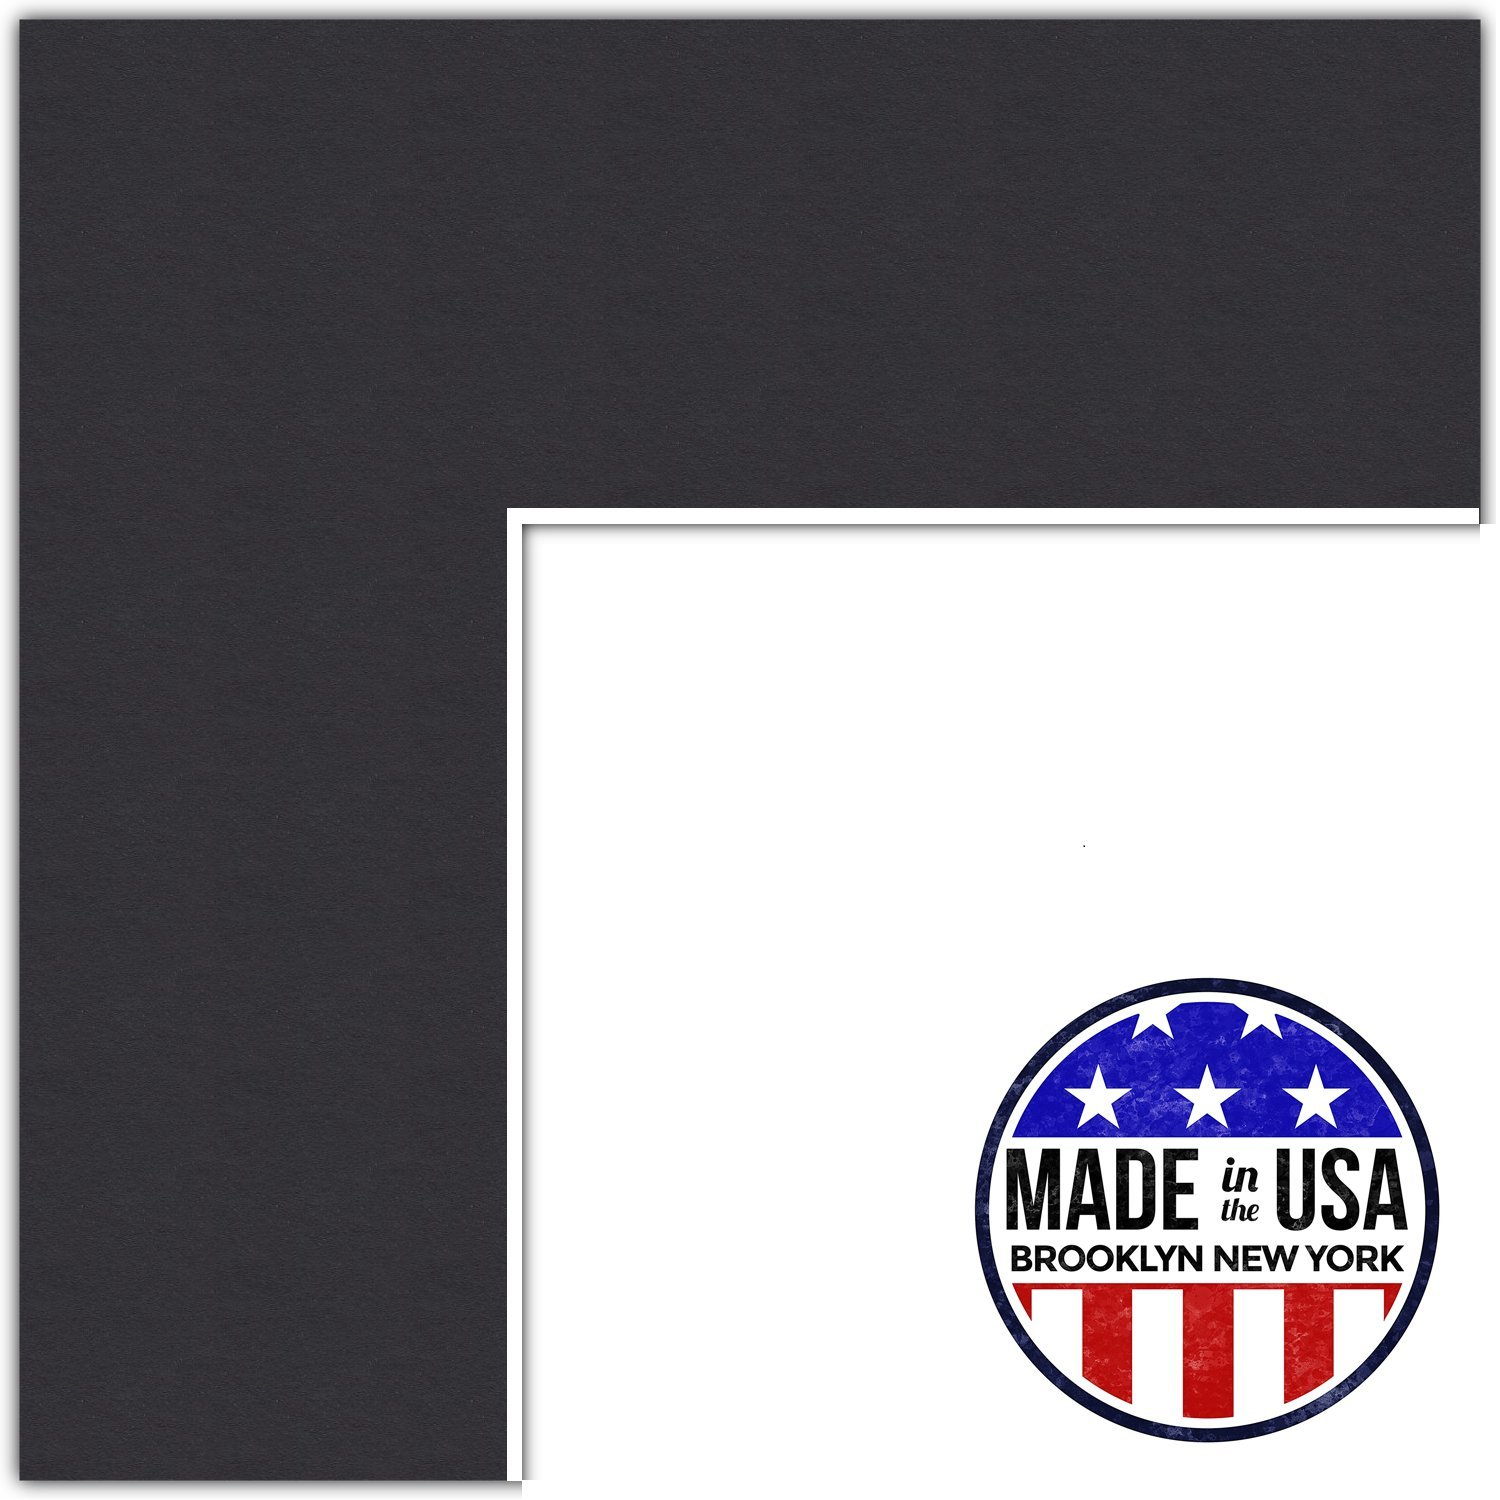 22x28 Smooth Black/Black Custom Mat for Picture Frame with 18x24 opening size (Mat Only, Frame NOT Included)